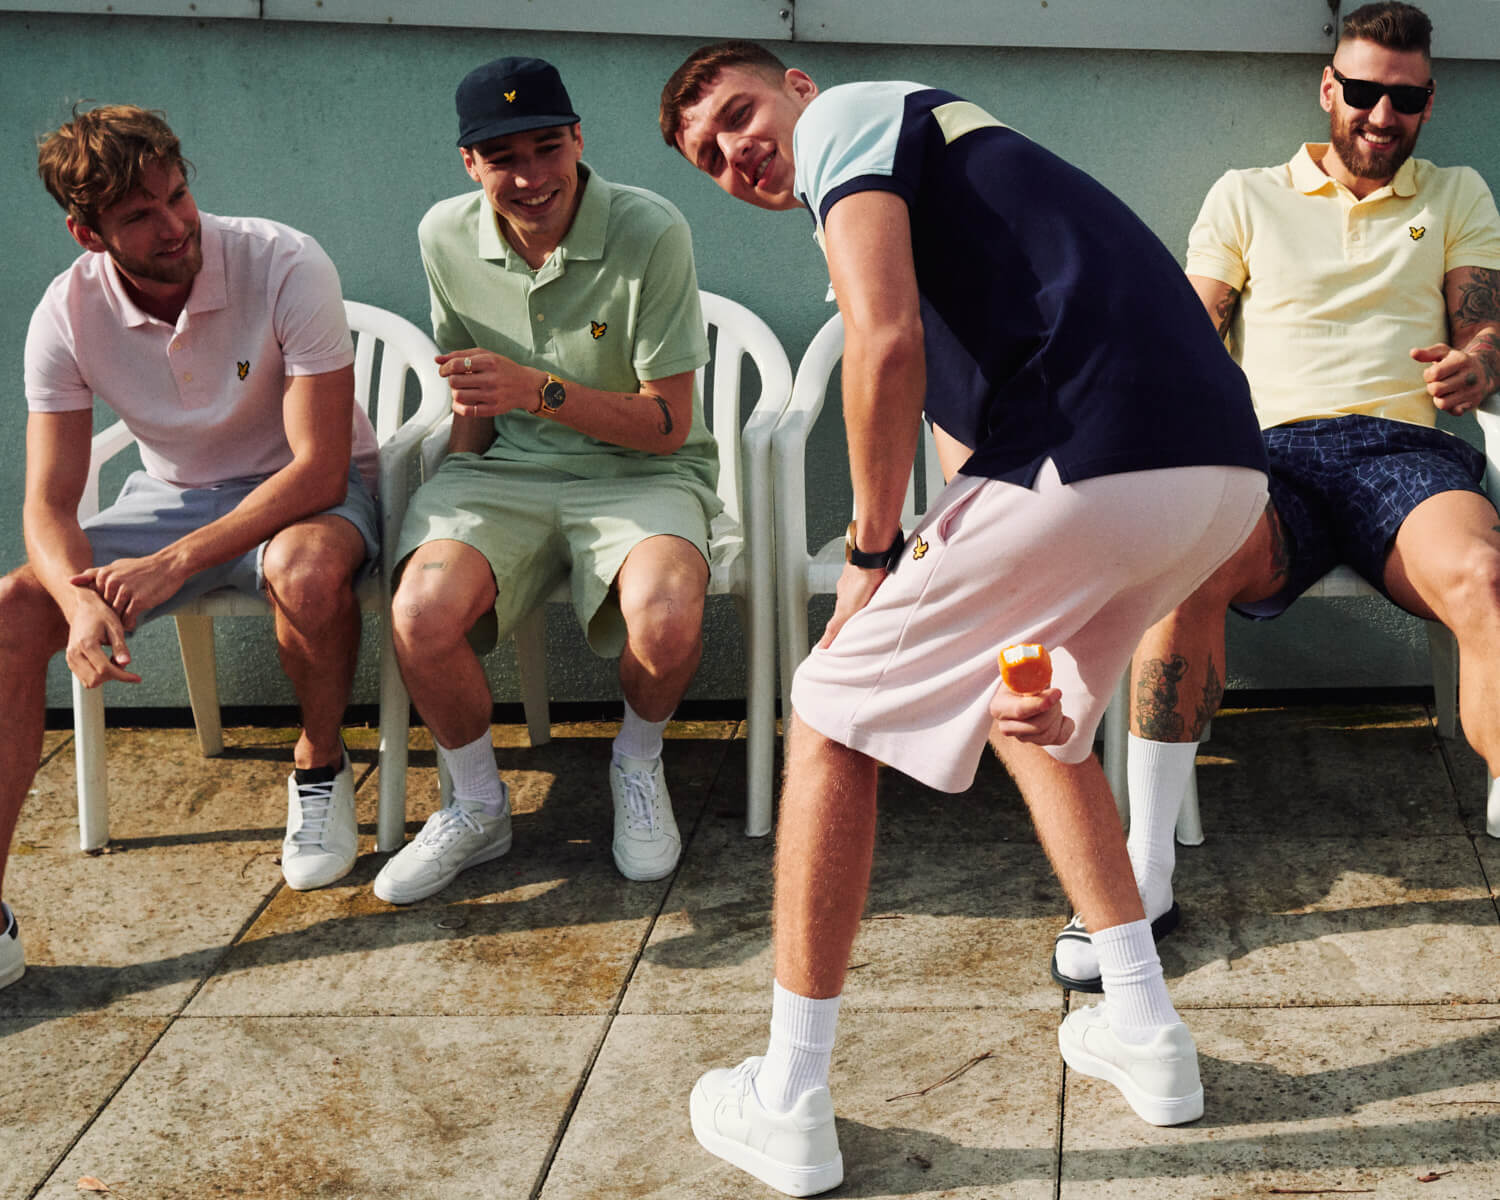 Lyle and Scott lads mess about  by lifestyle photographer Tim Cole